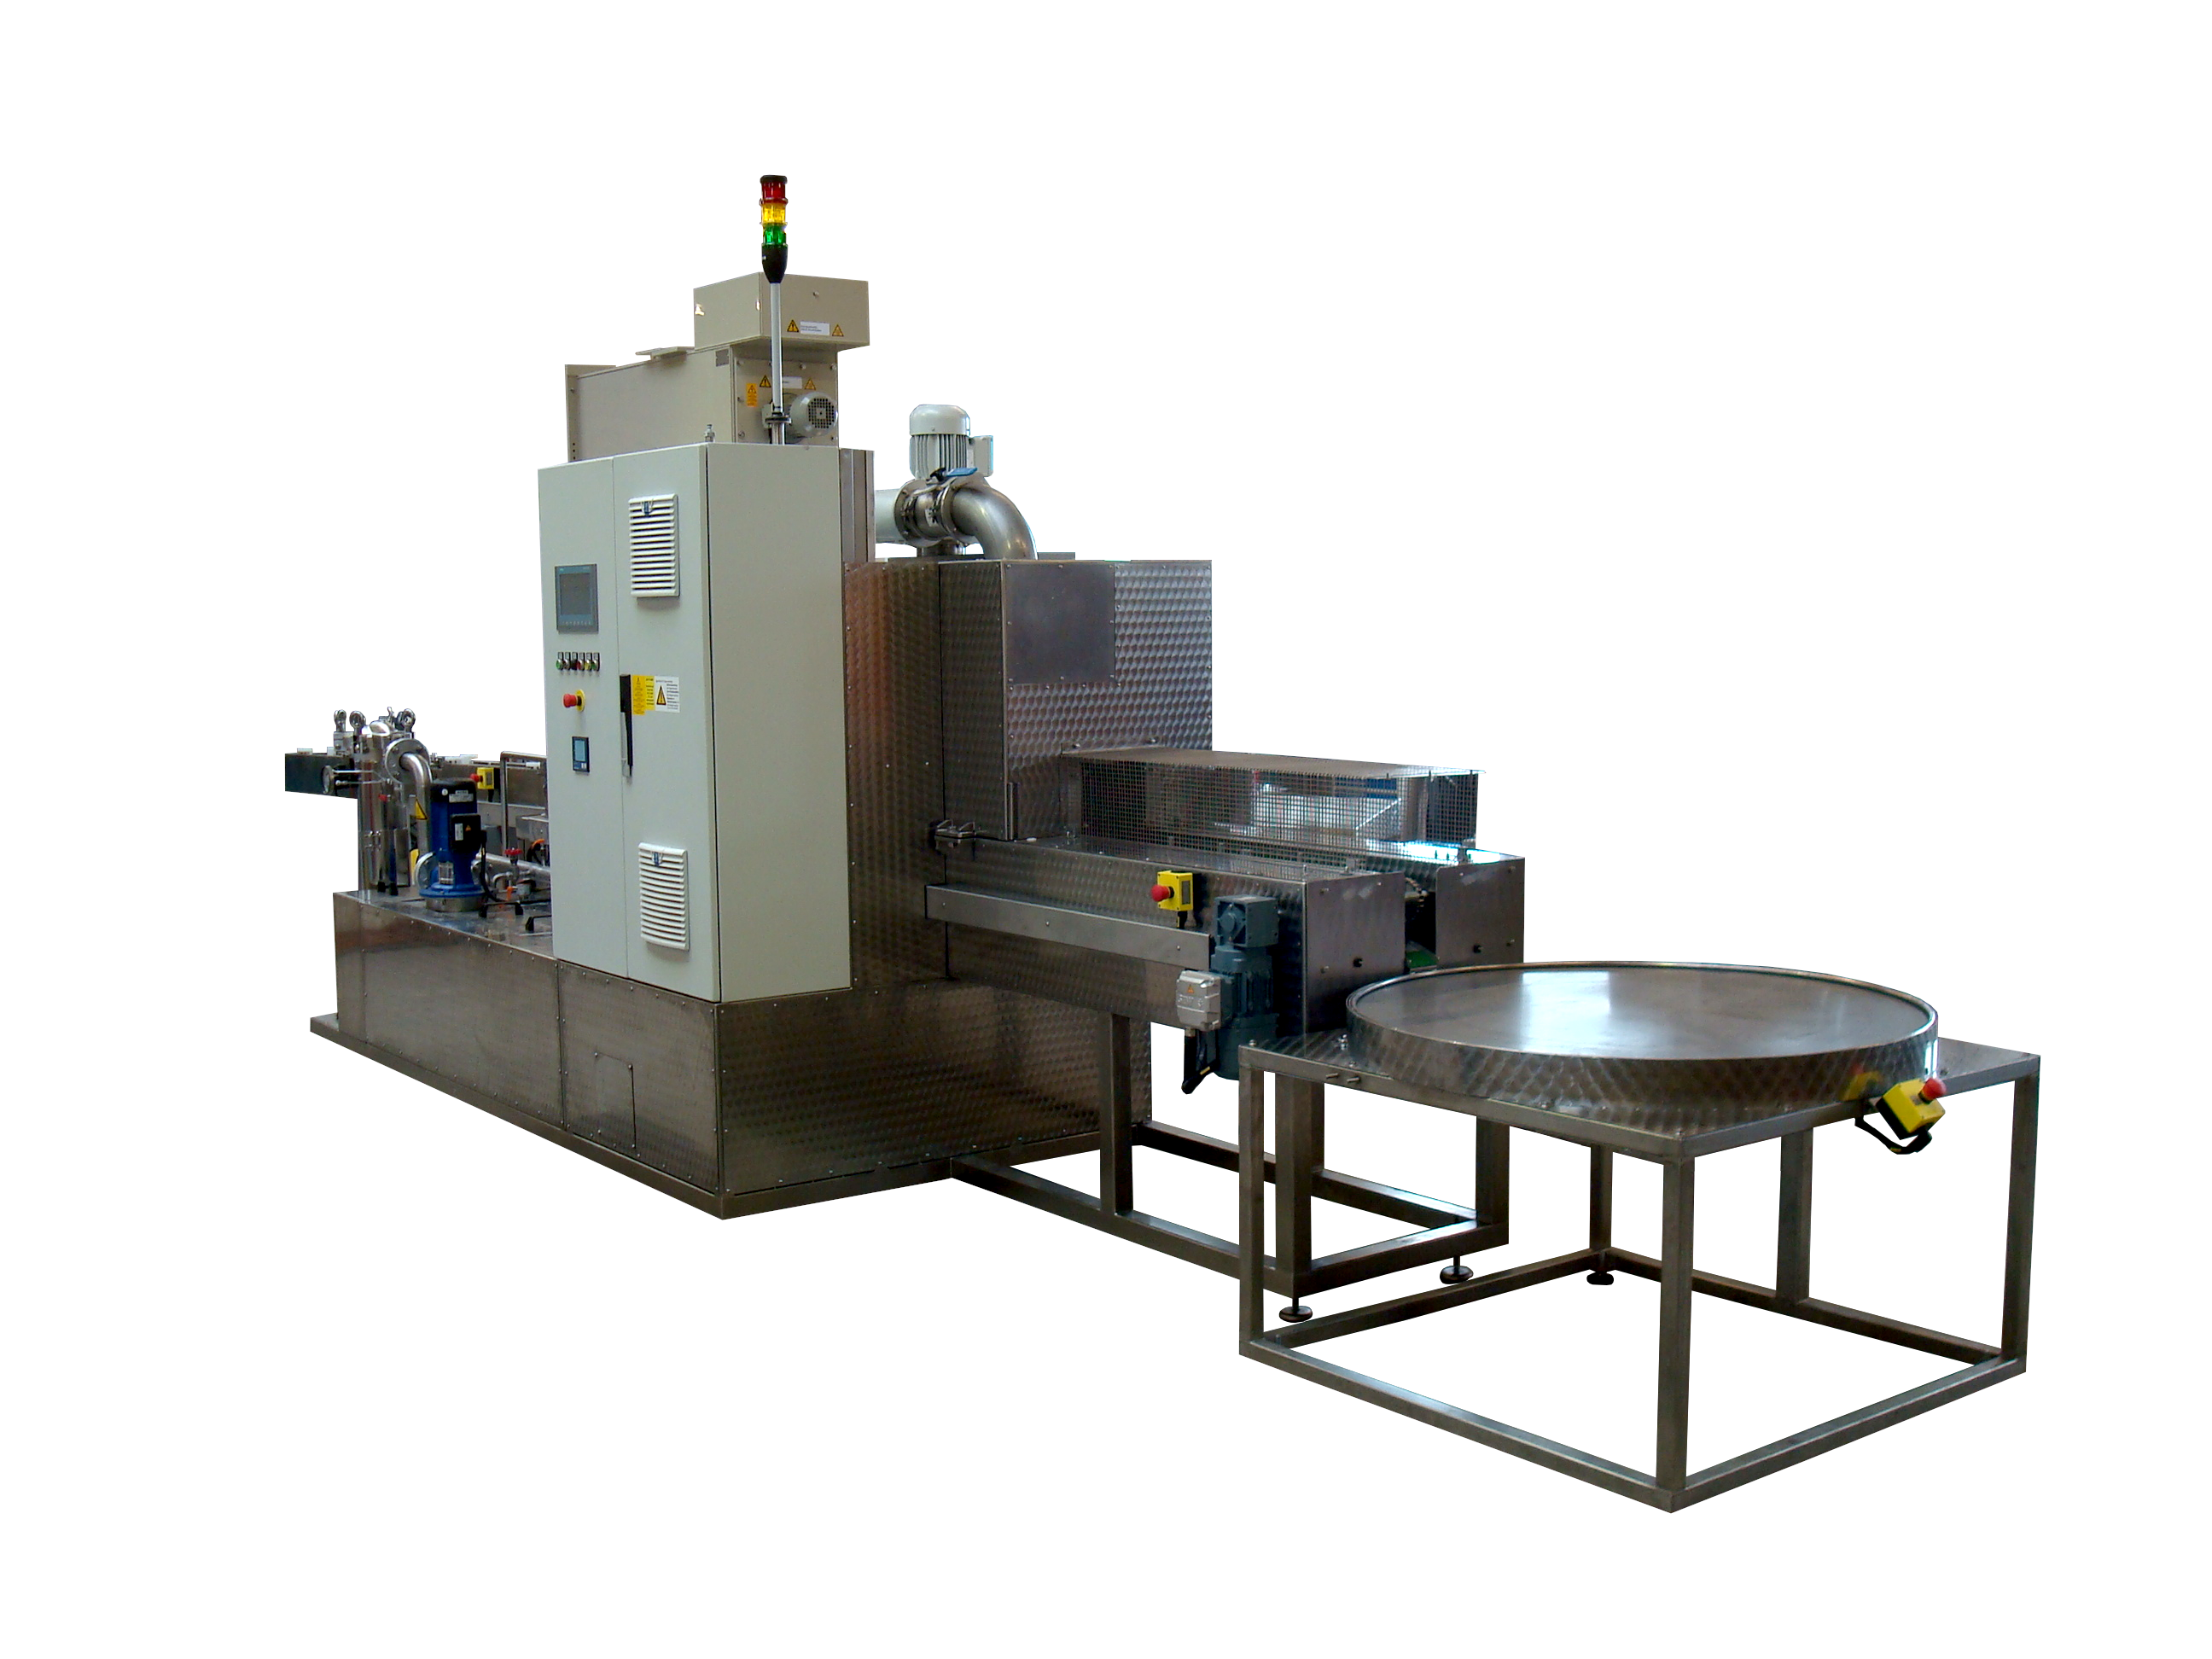 Robot-loaded continuous cleaning system cleaning/drying with buffer turntable